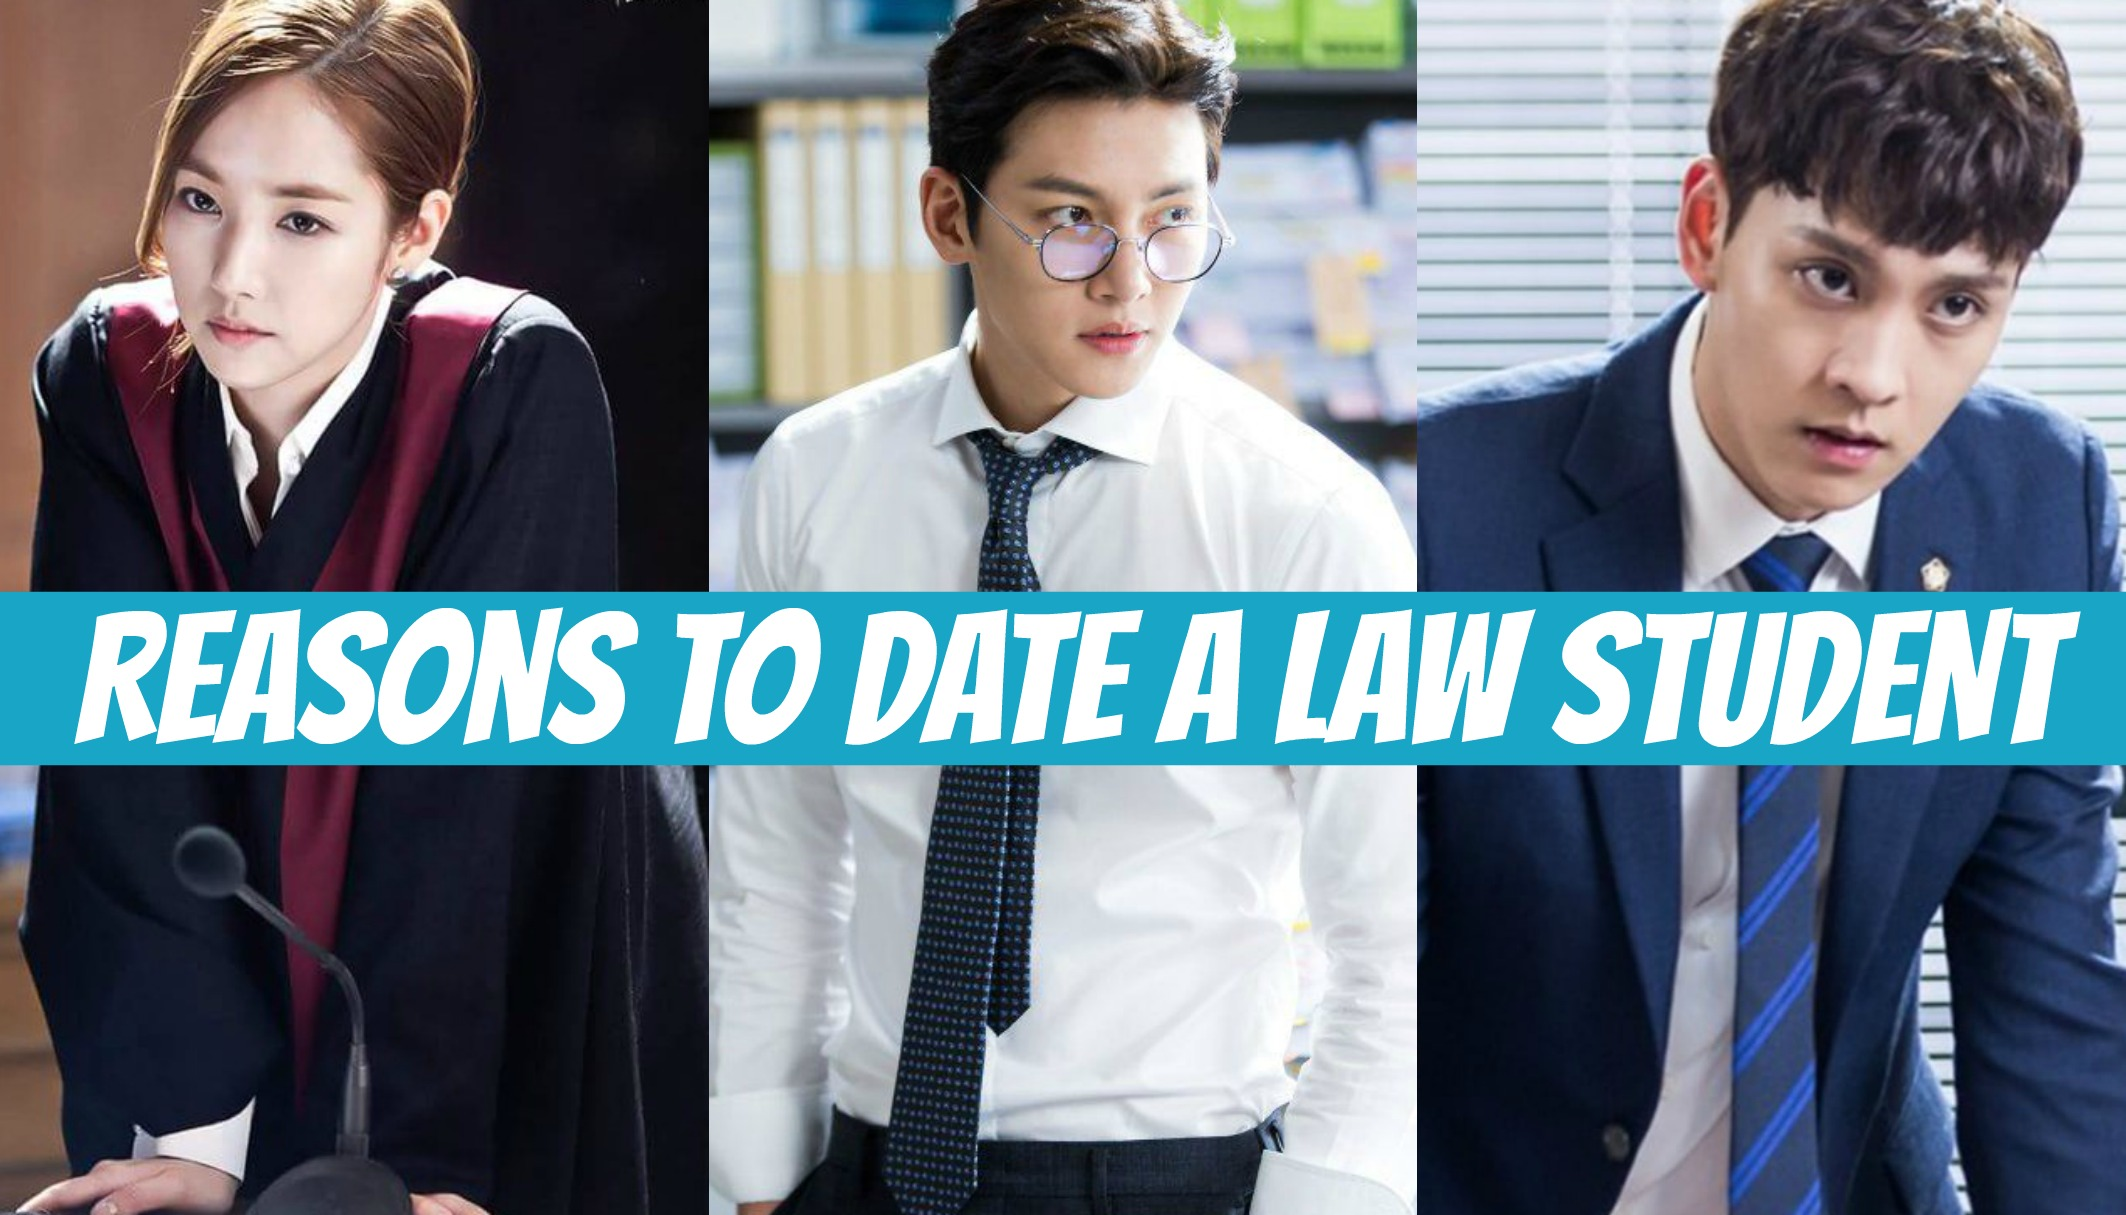 law student dating undergrad Pros, cons of applying to law school as an undergrad whether you apply while in college or first gain work experience, ensure you have a competitive application.